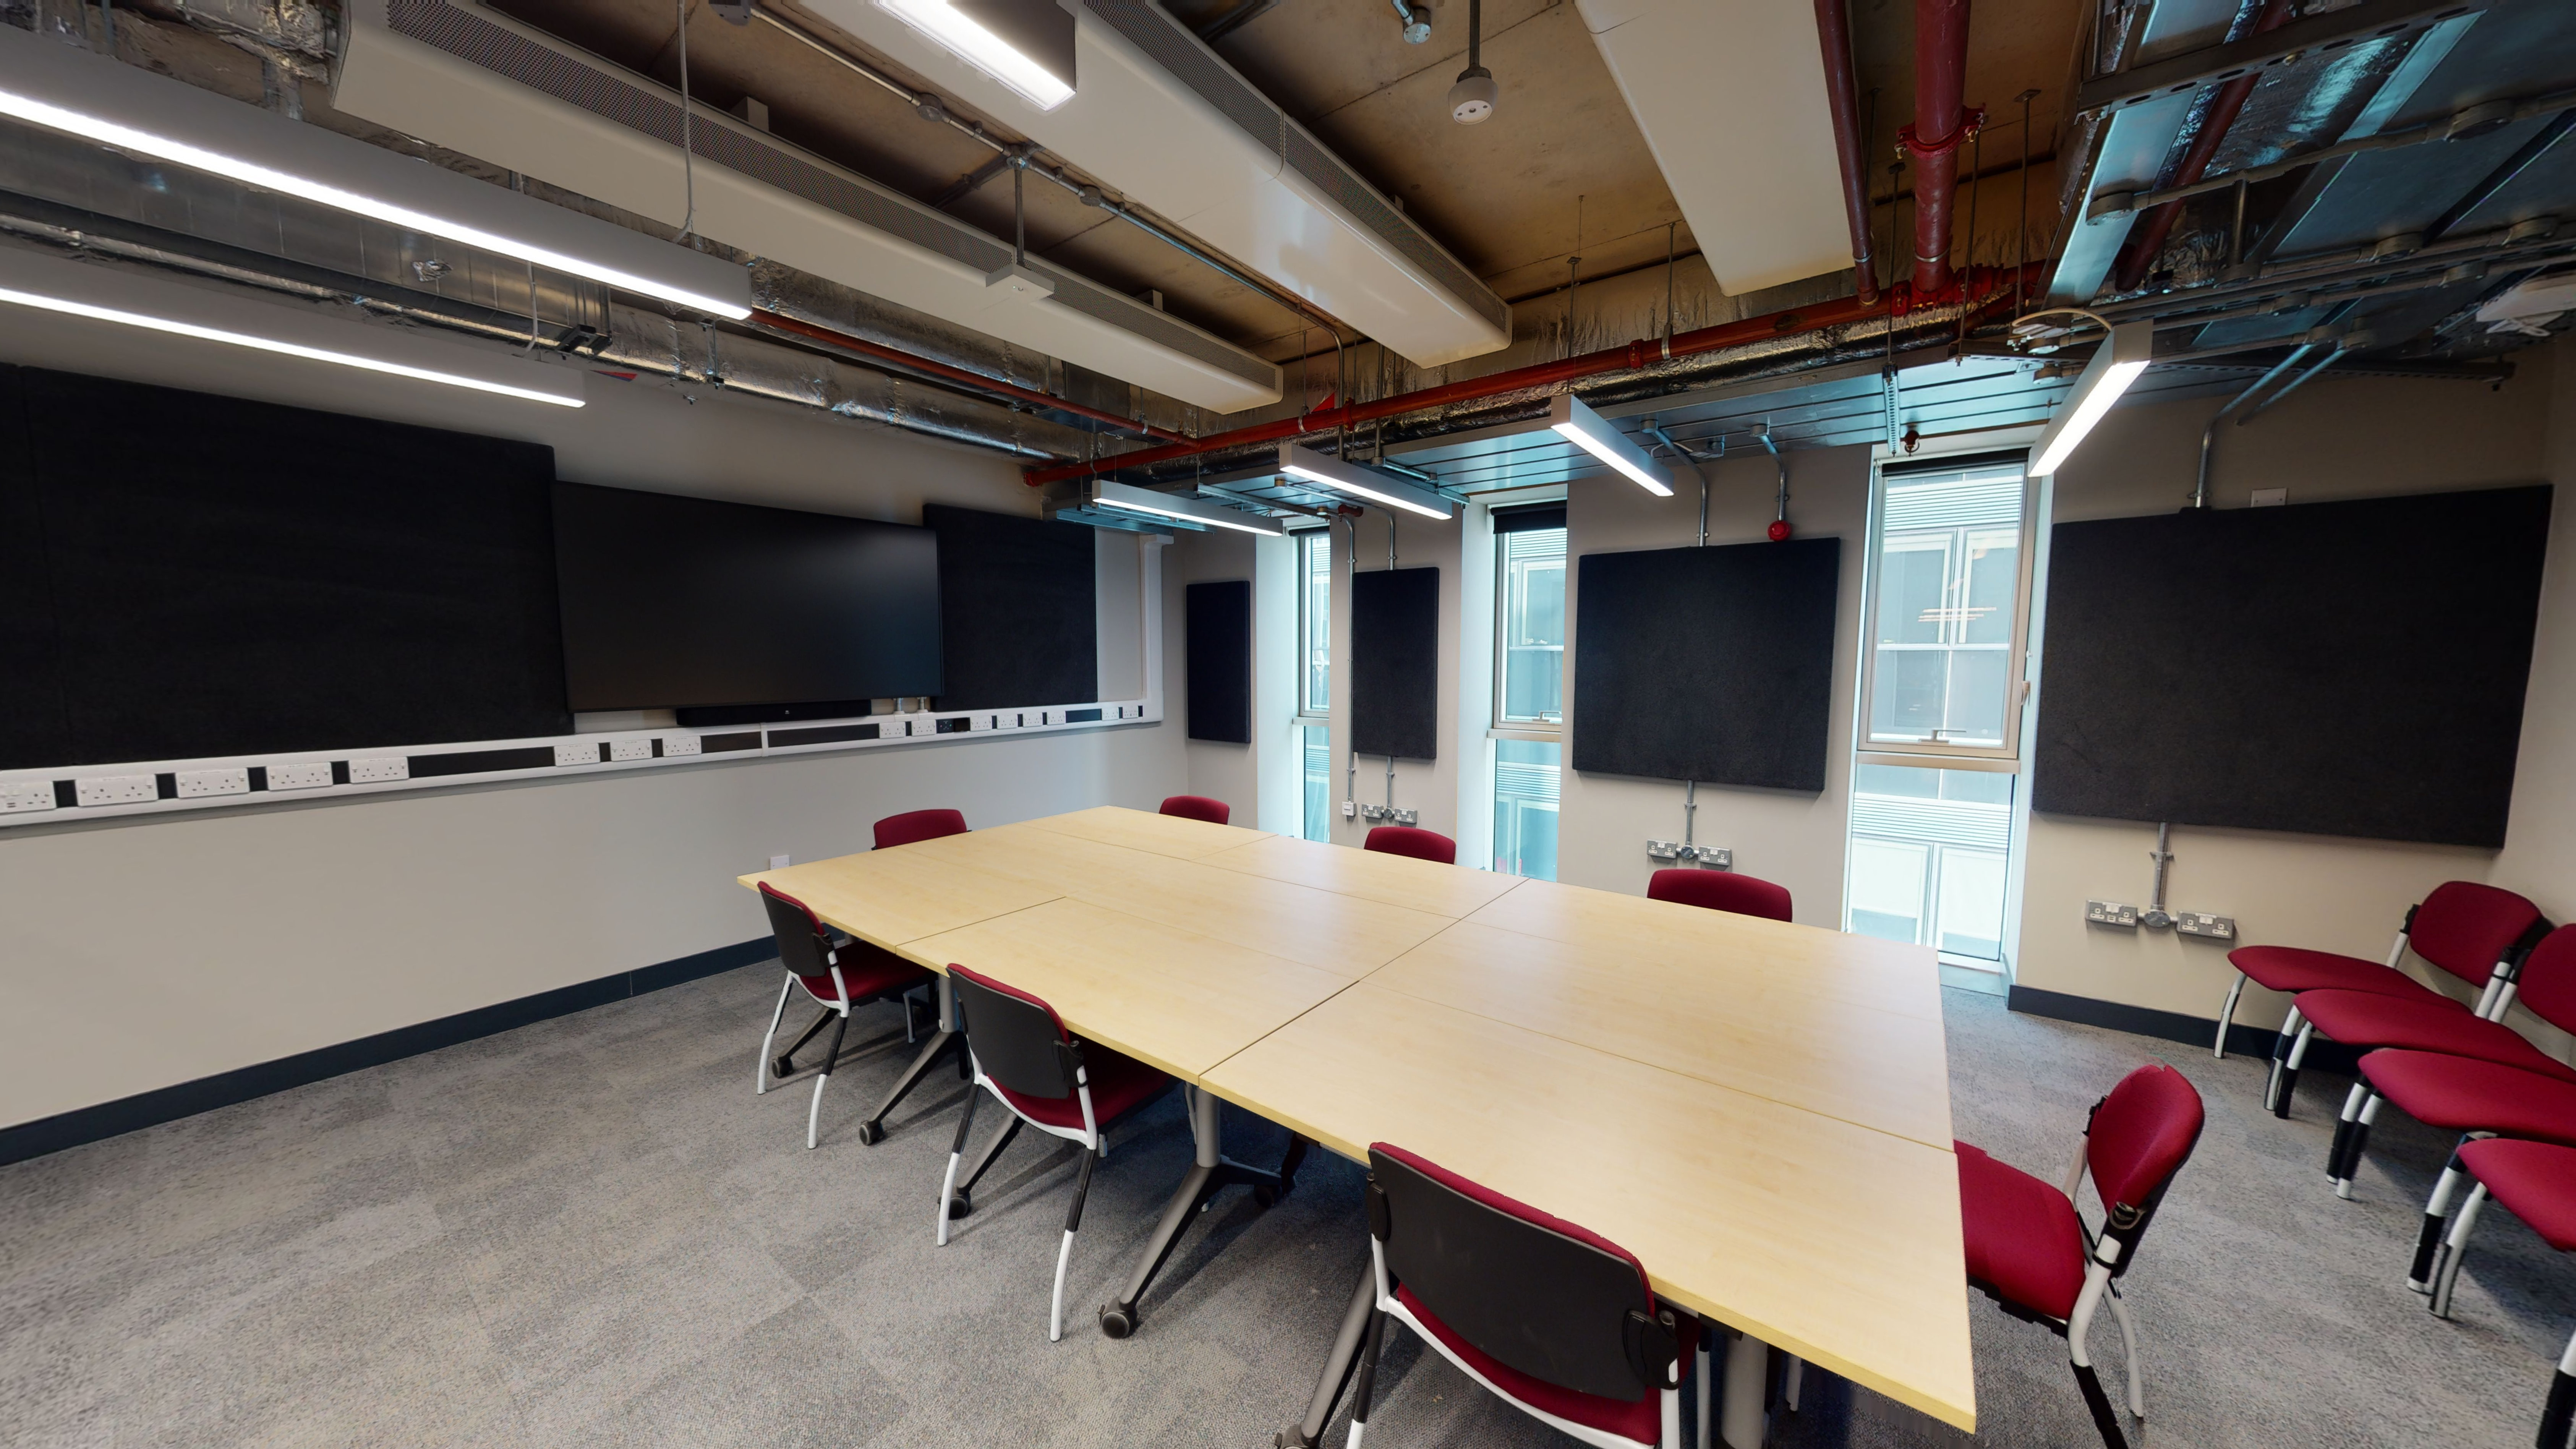 Large office style space with a large table and seating for 10+ people.